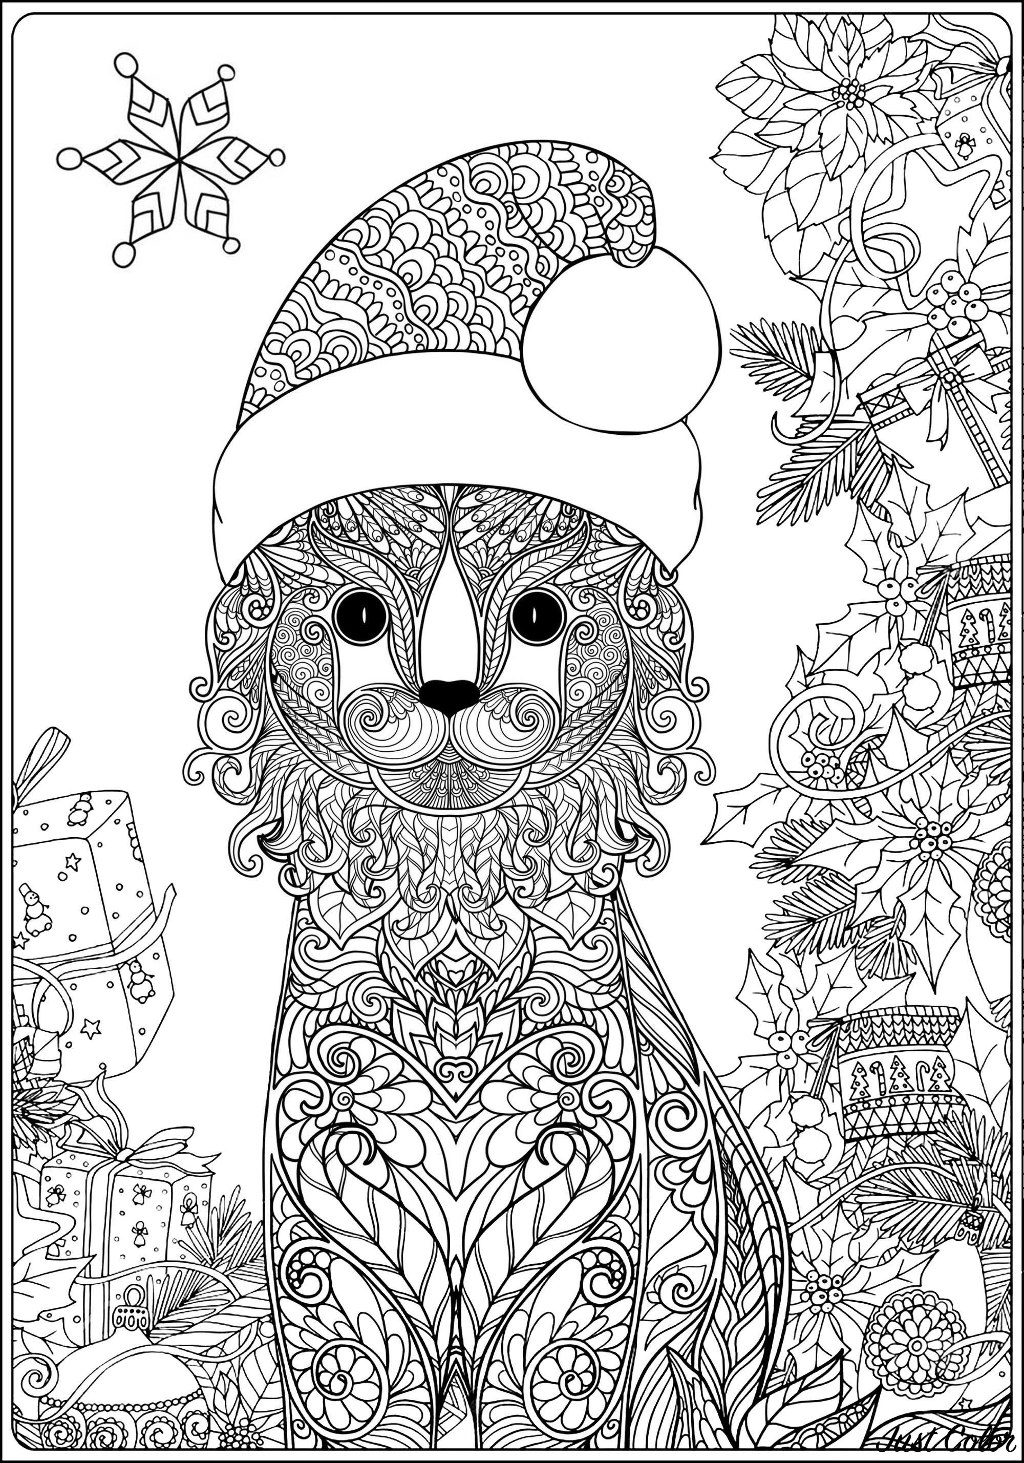 A Cat ready for Christmas time, with beautiful ornaments around, and complex patterns